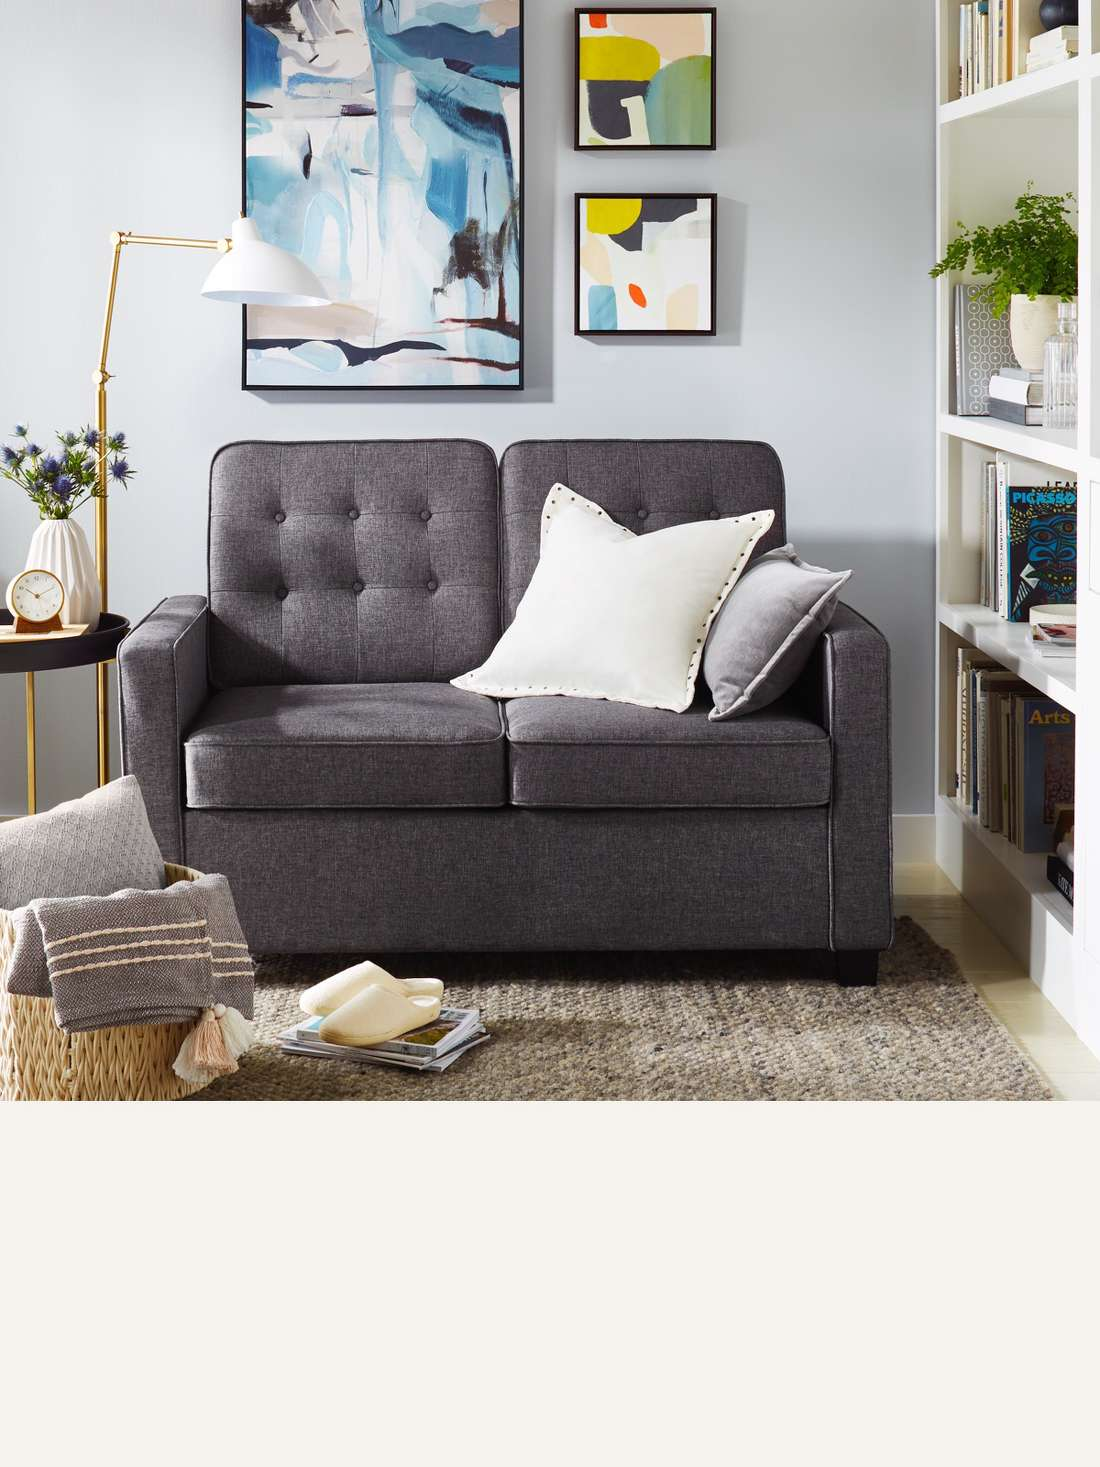 Sleeper sofa also known as a pull out sofa a sleeper sofa is a functional way to turn a study into a guest room browse sleepers